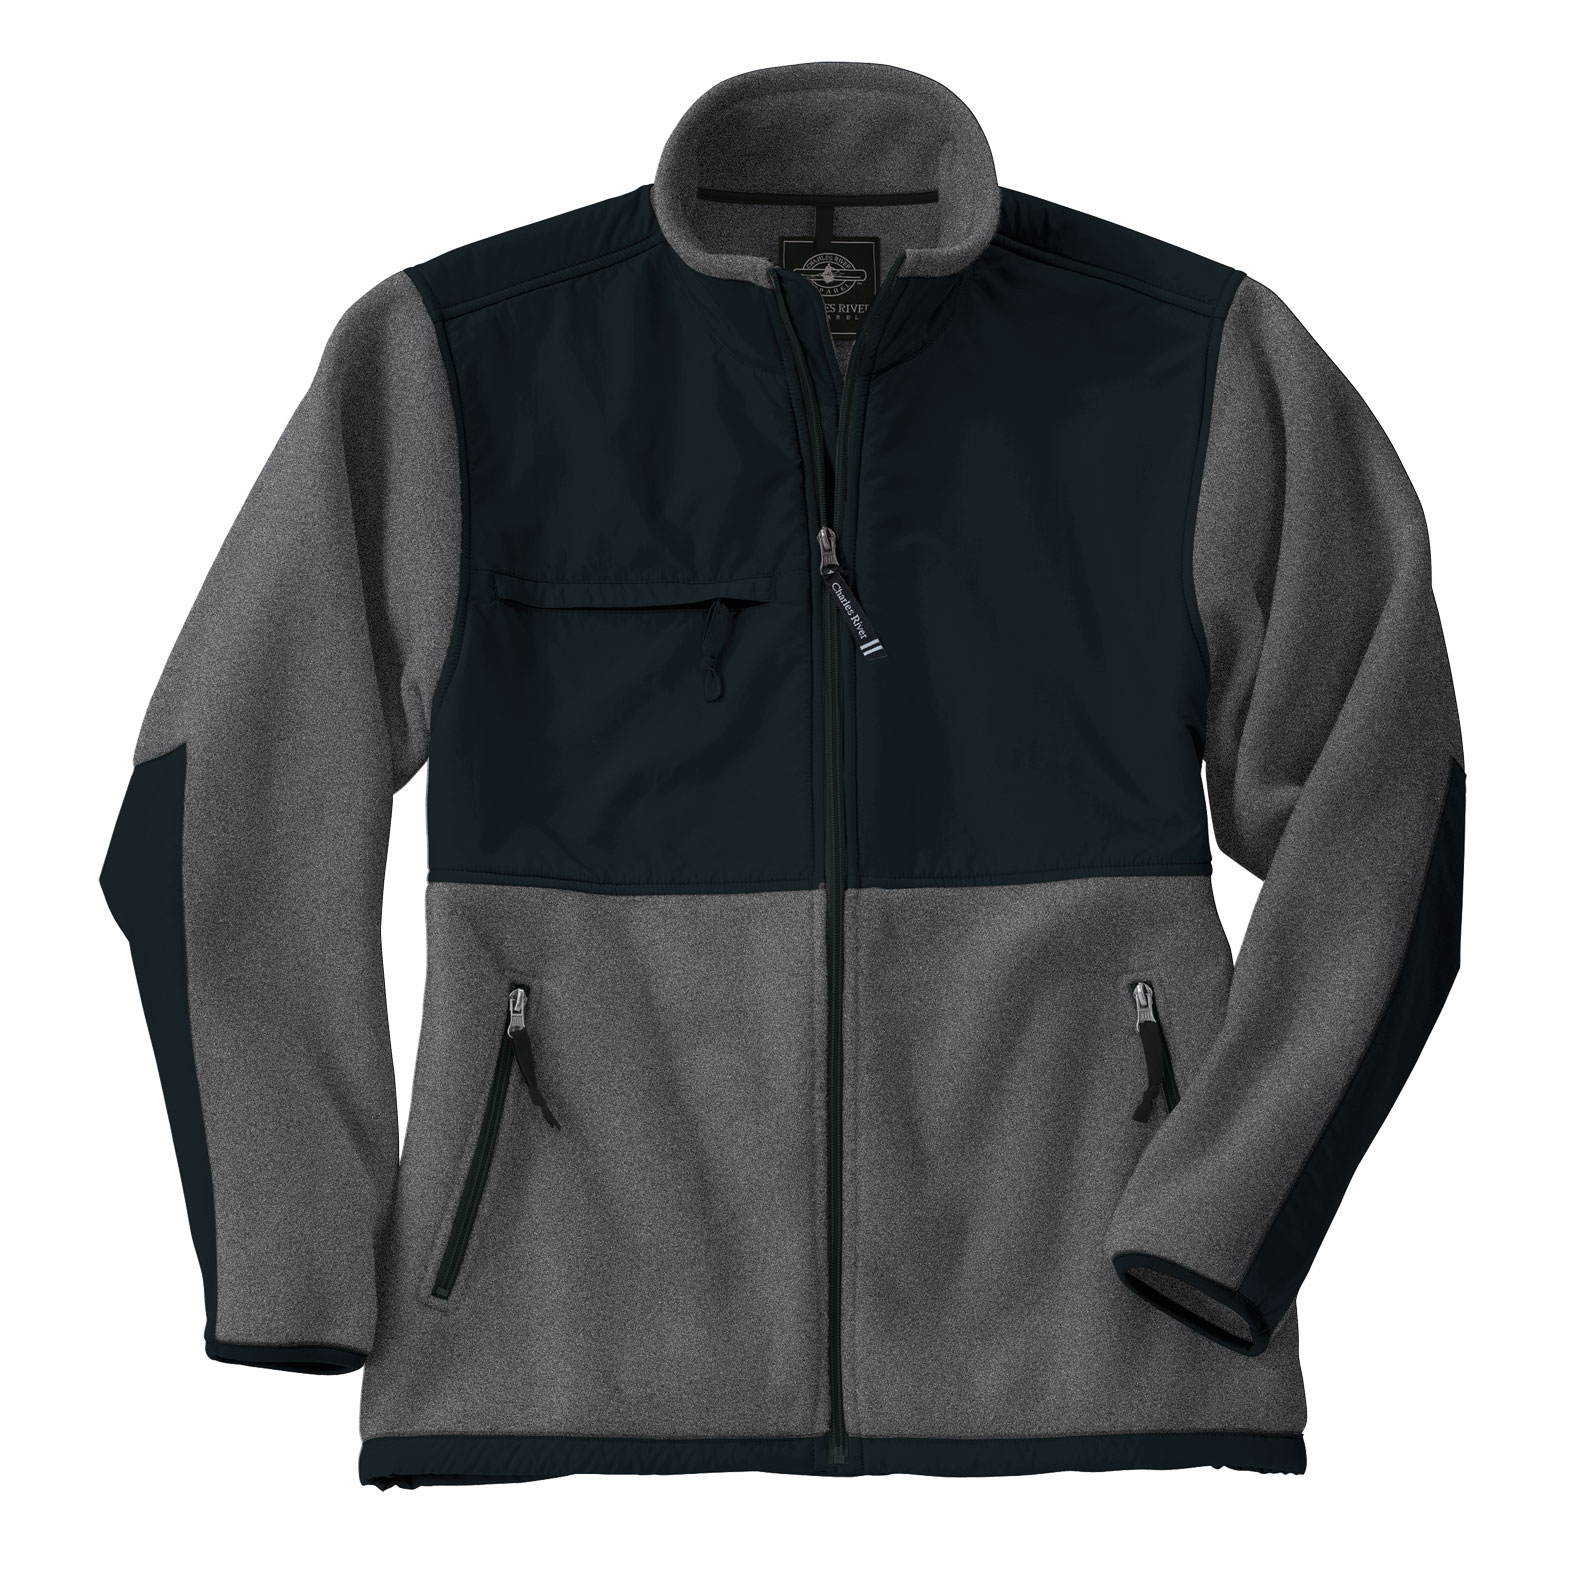 Adult Evolux™ Fleece Jacket by Charles River Apparel